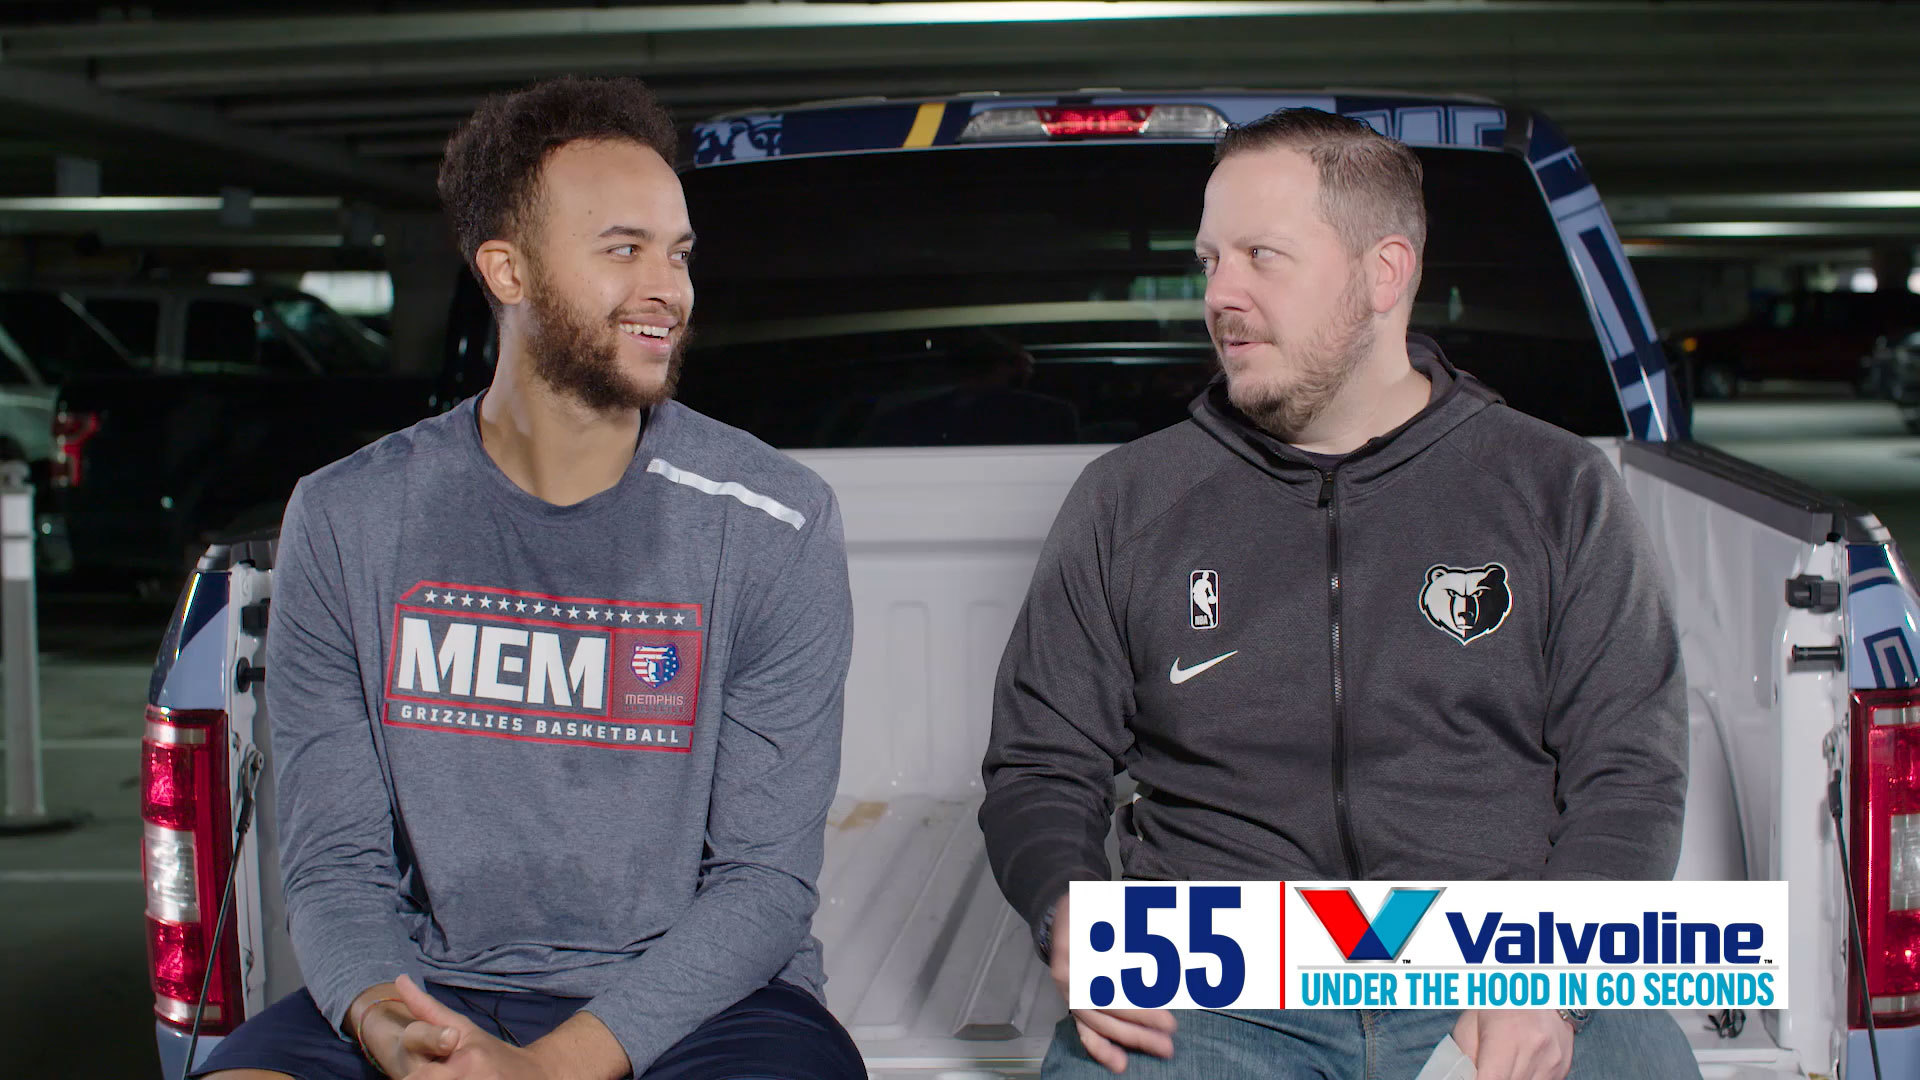 Valvoline: Under the Hood in 60 Seconds with Kyle Anderson